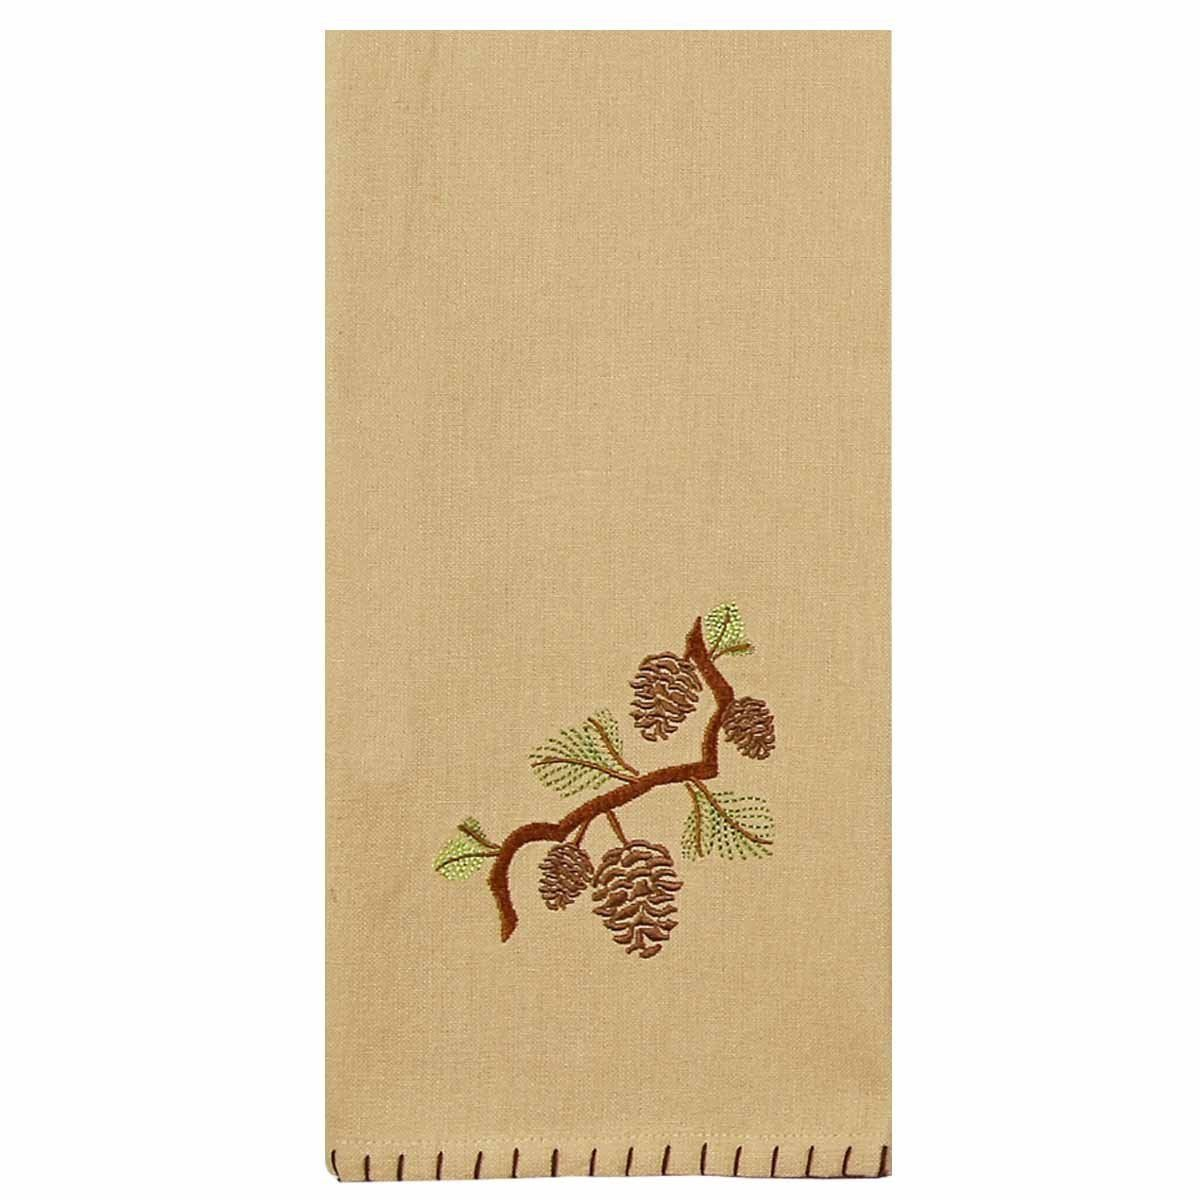 Pinecones Towel - Set of Two | Products | Pinterest | Pinecone ...